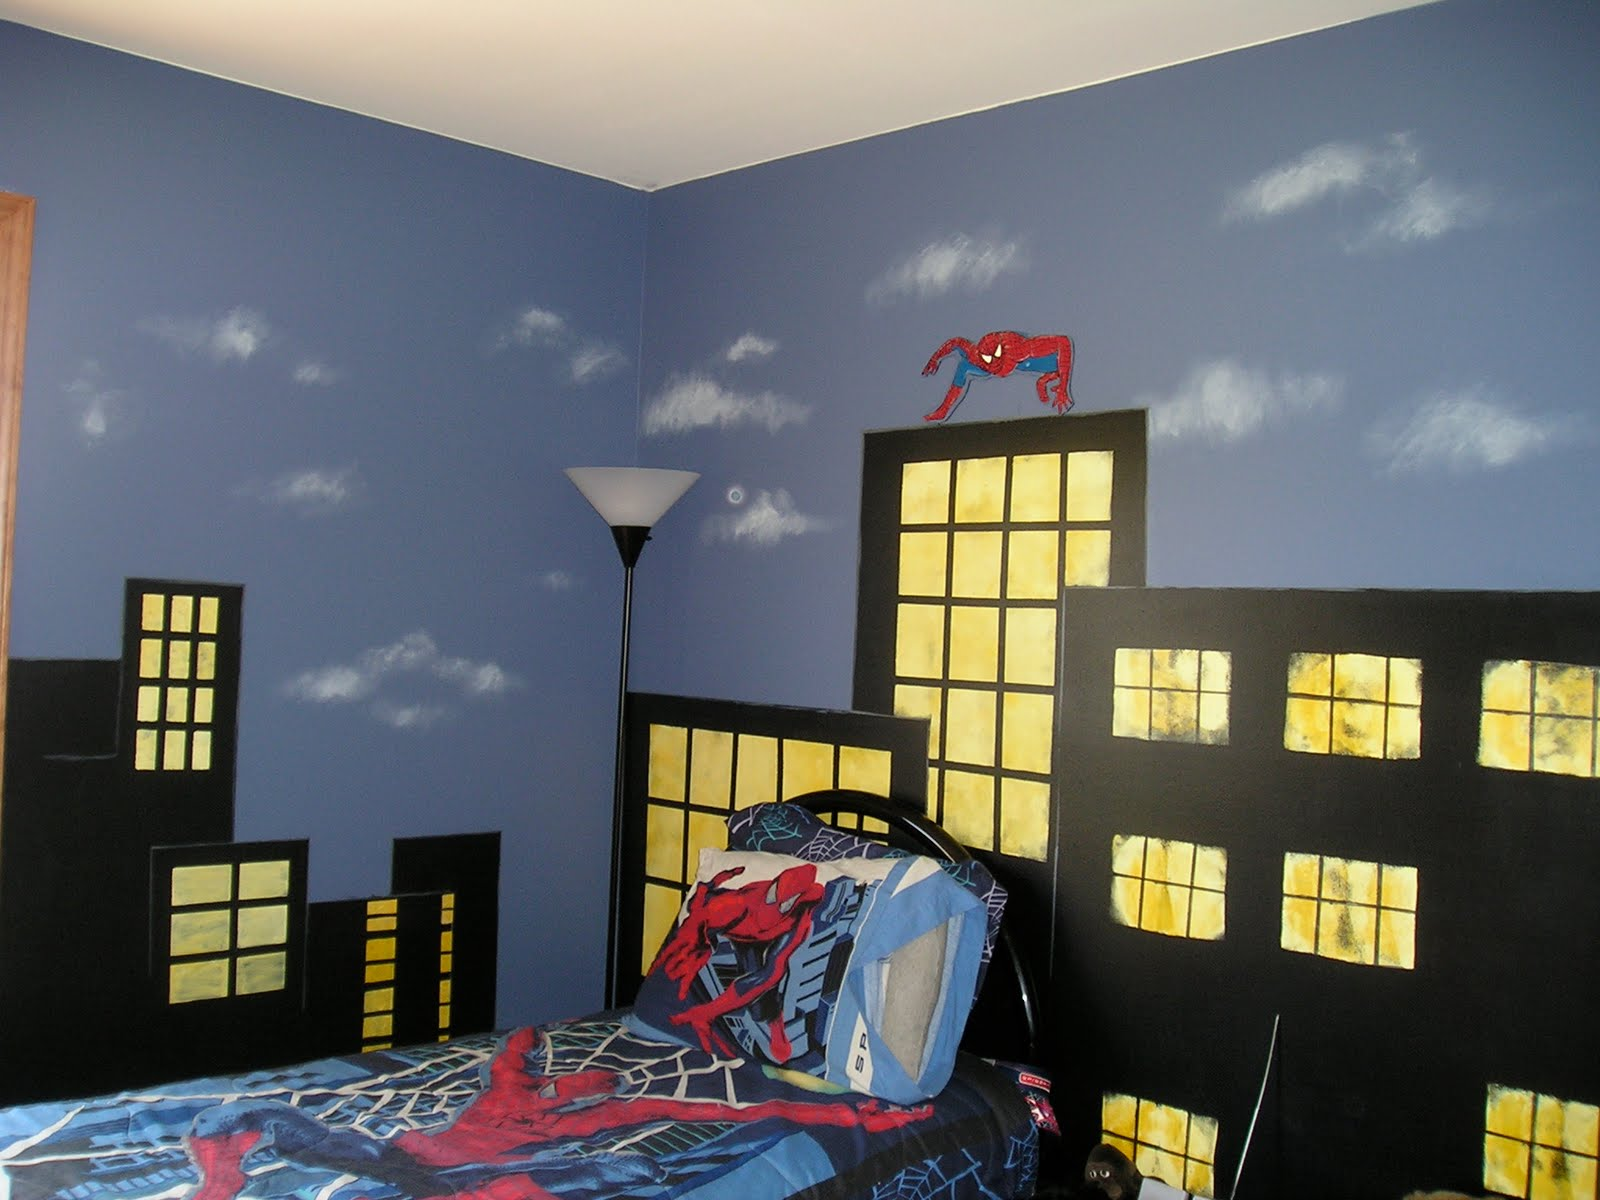 Jennifer d rizzo designs boy 39 s room murals for Superhero bedroom ideas